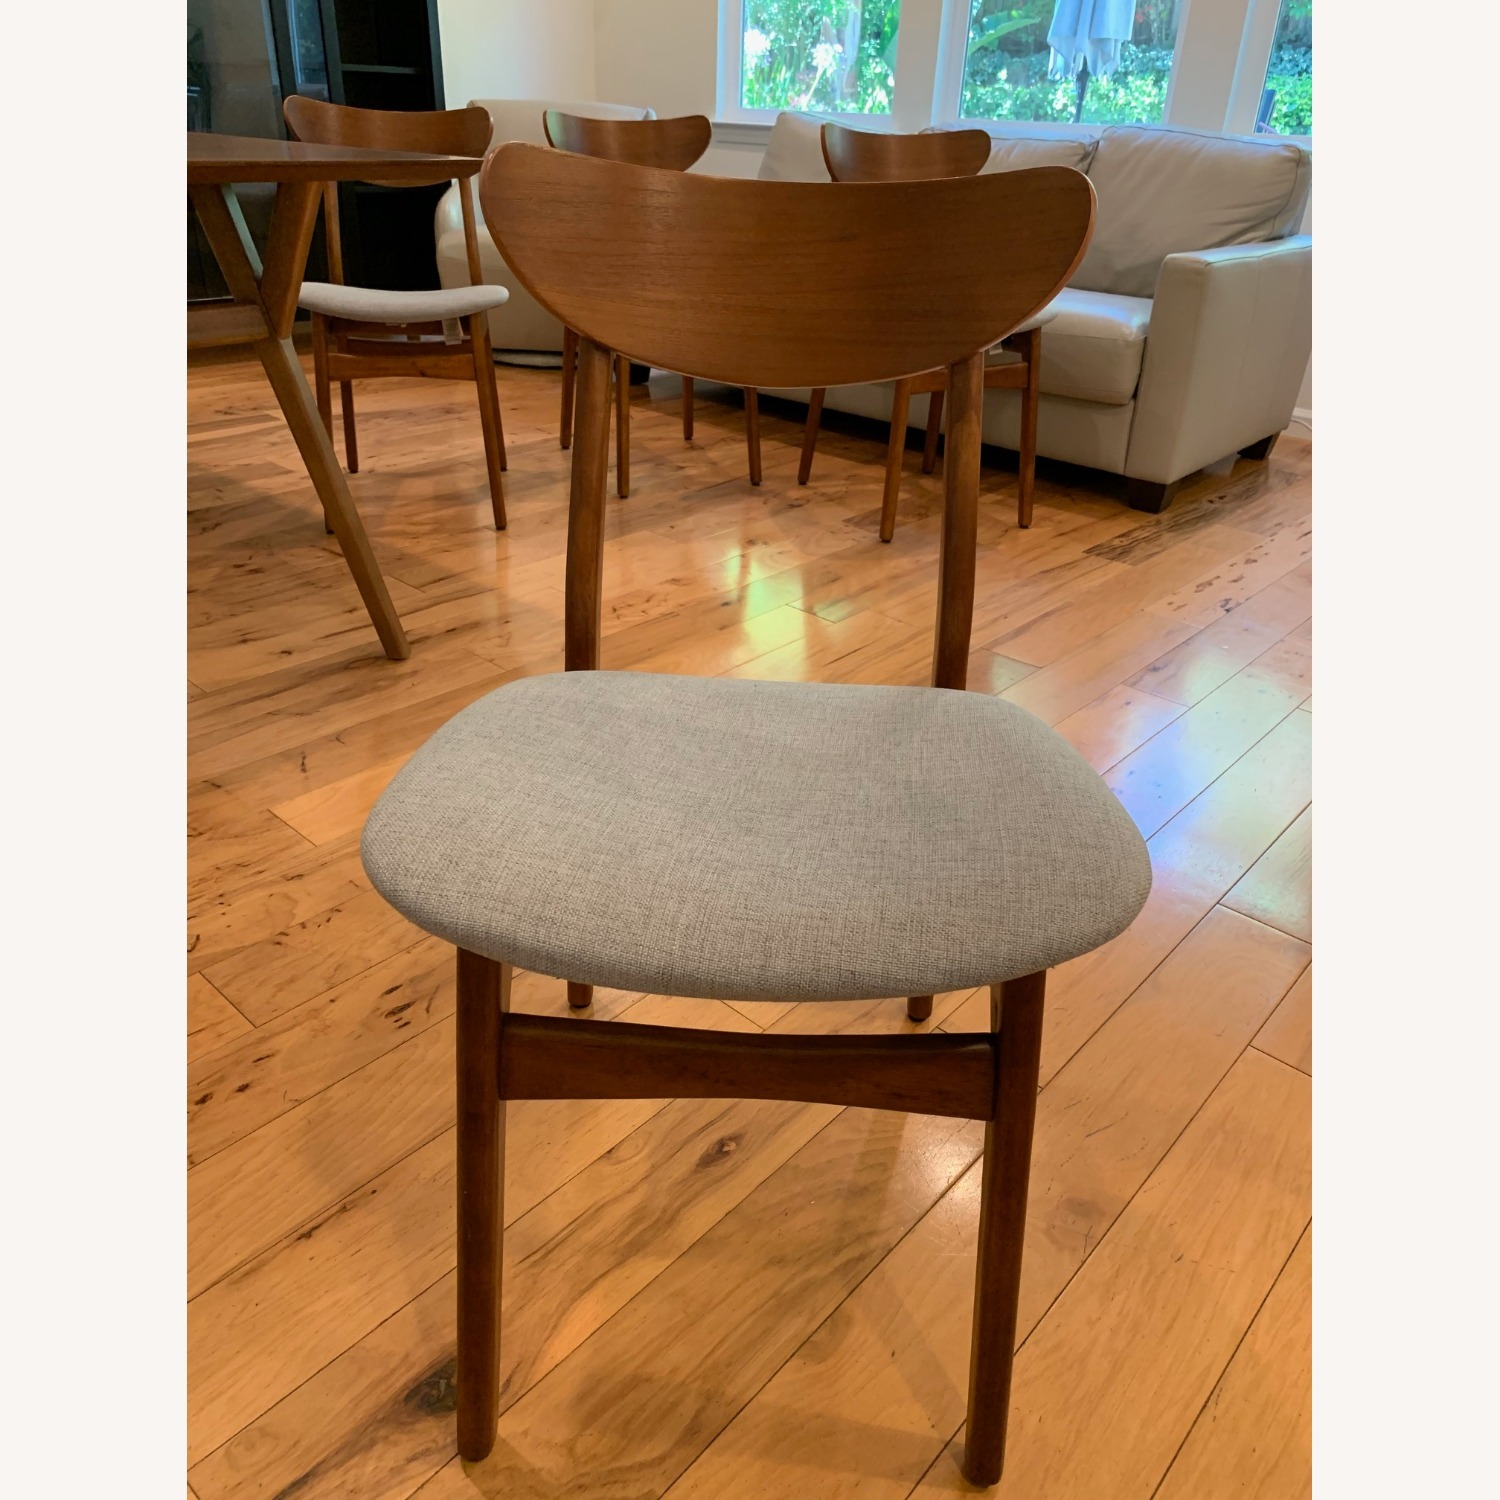 West Elm Classic Cafe Dining Chair(s) - image-2